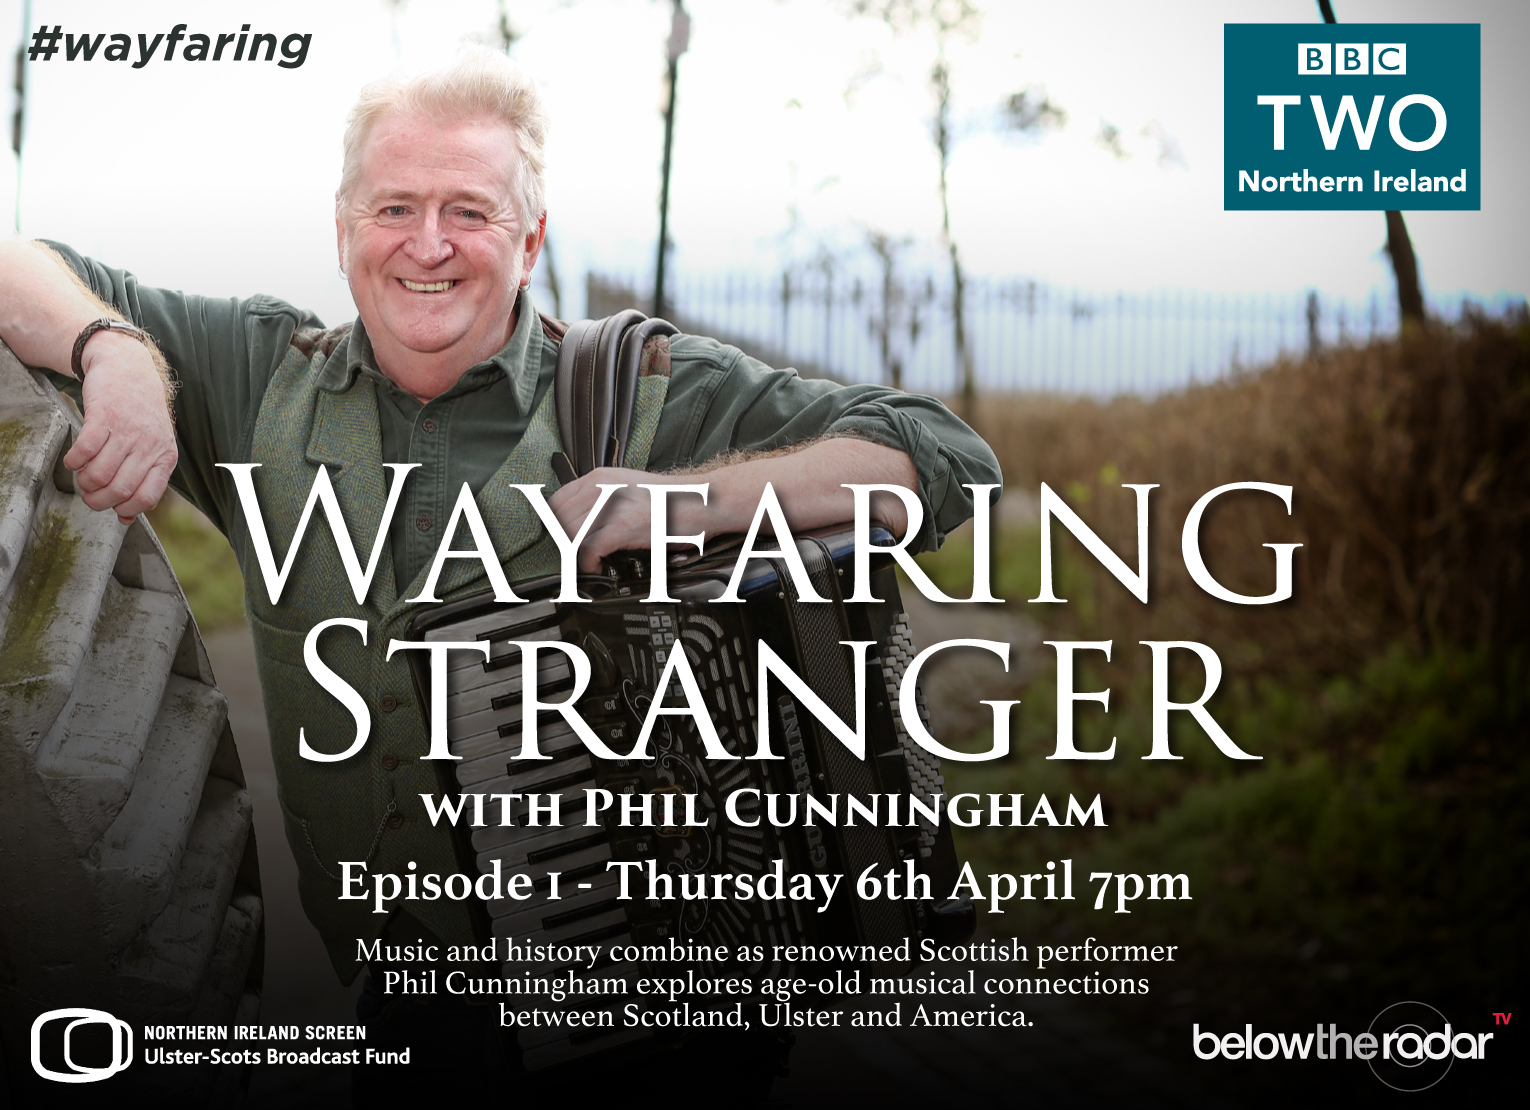 Wayfaring Stranger with Phil Cunningham - Series for BBC Two NI